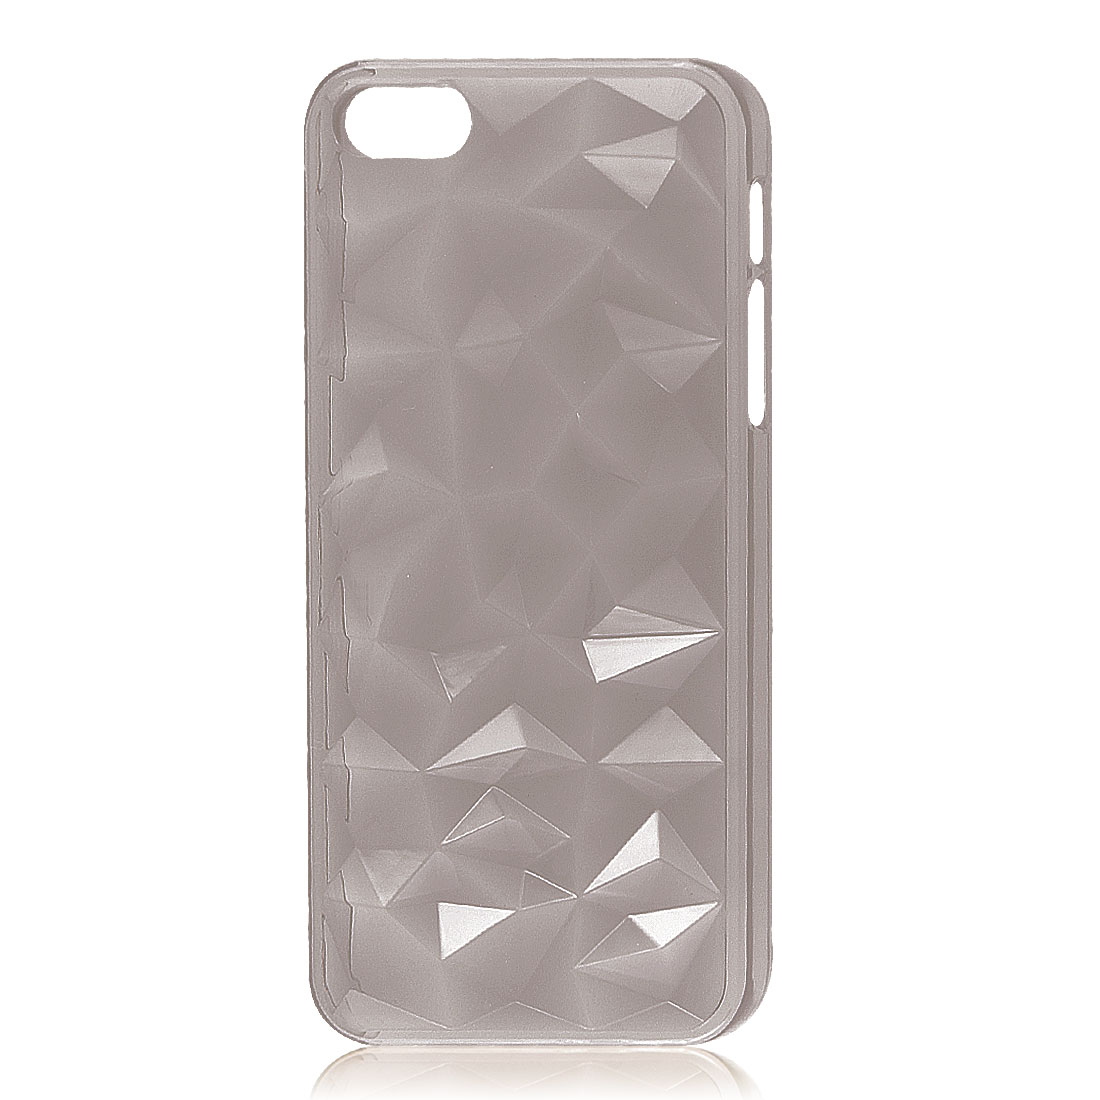 3D Water Cube Clear Gray Hard Back Case Cover Protector for iPhone 5 5G